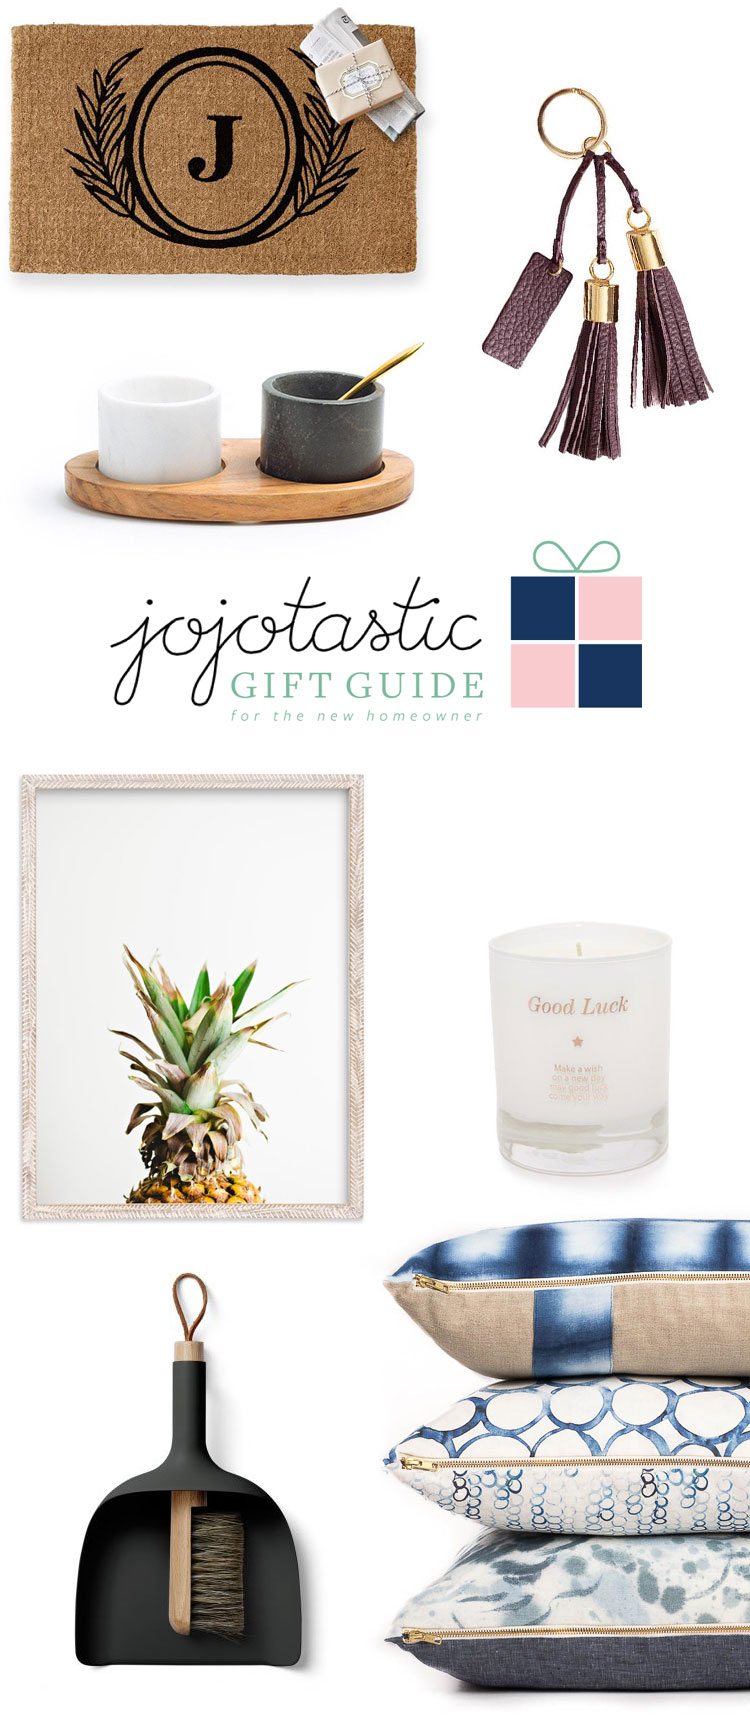 Ultimate Gift Guide: for the new homeowner! Over 30 unique gift ideas and stocking stuffers whether they own a new home, a tiny house, or a fier upper — get the full guide on Jojotastic.com